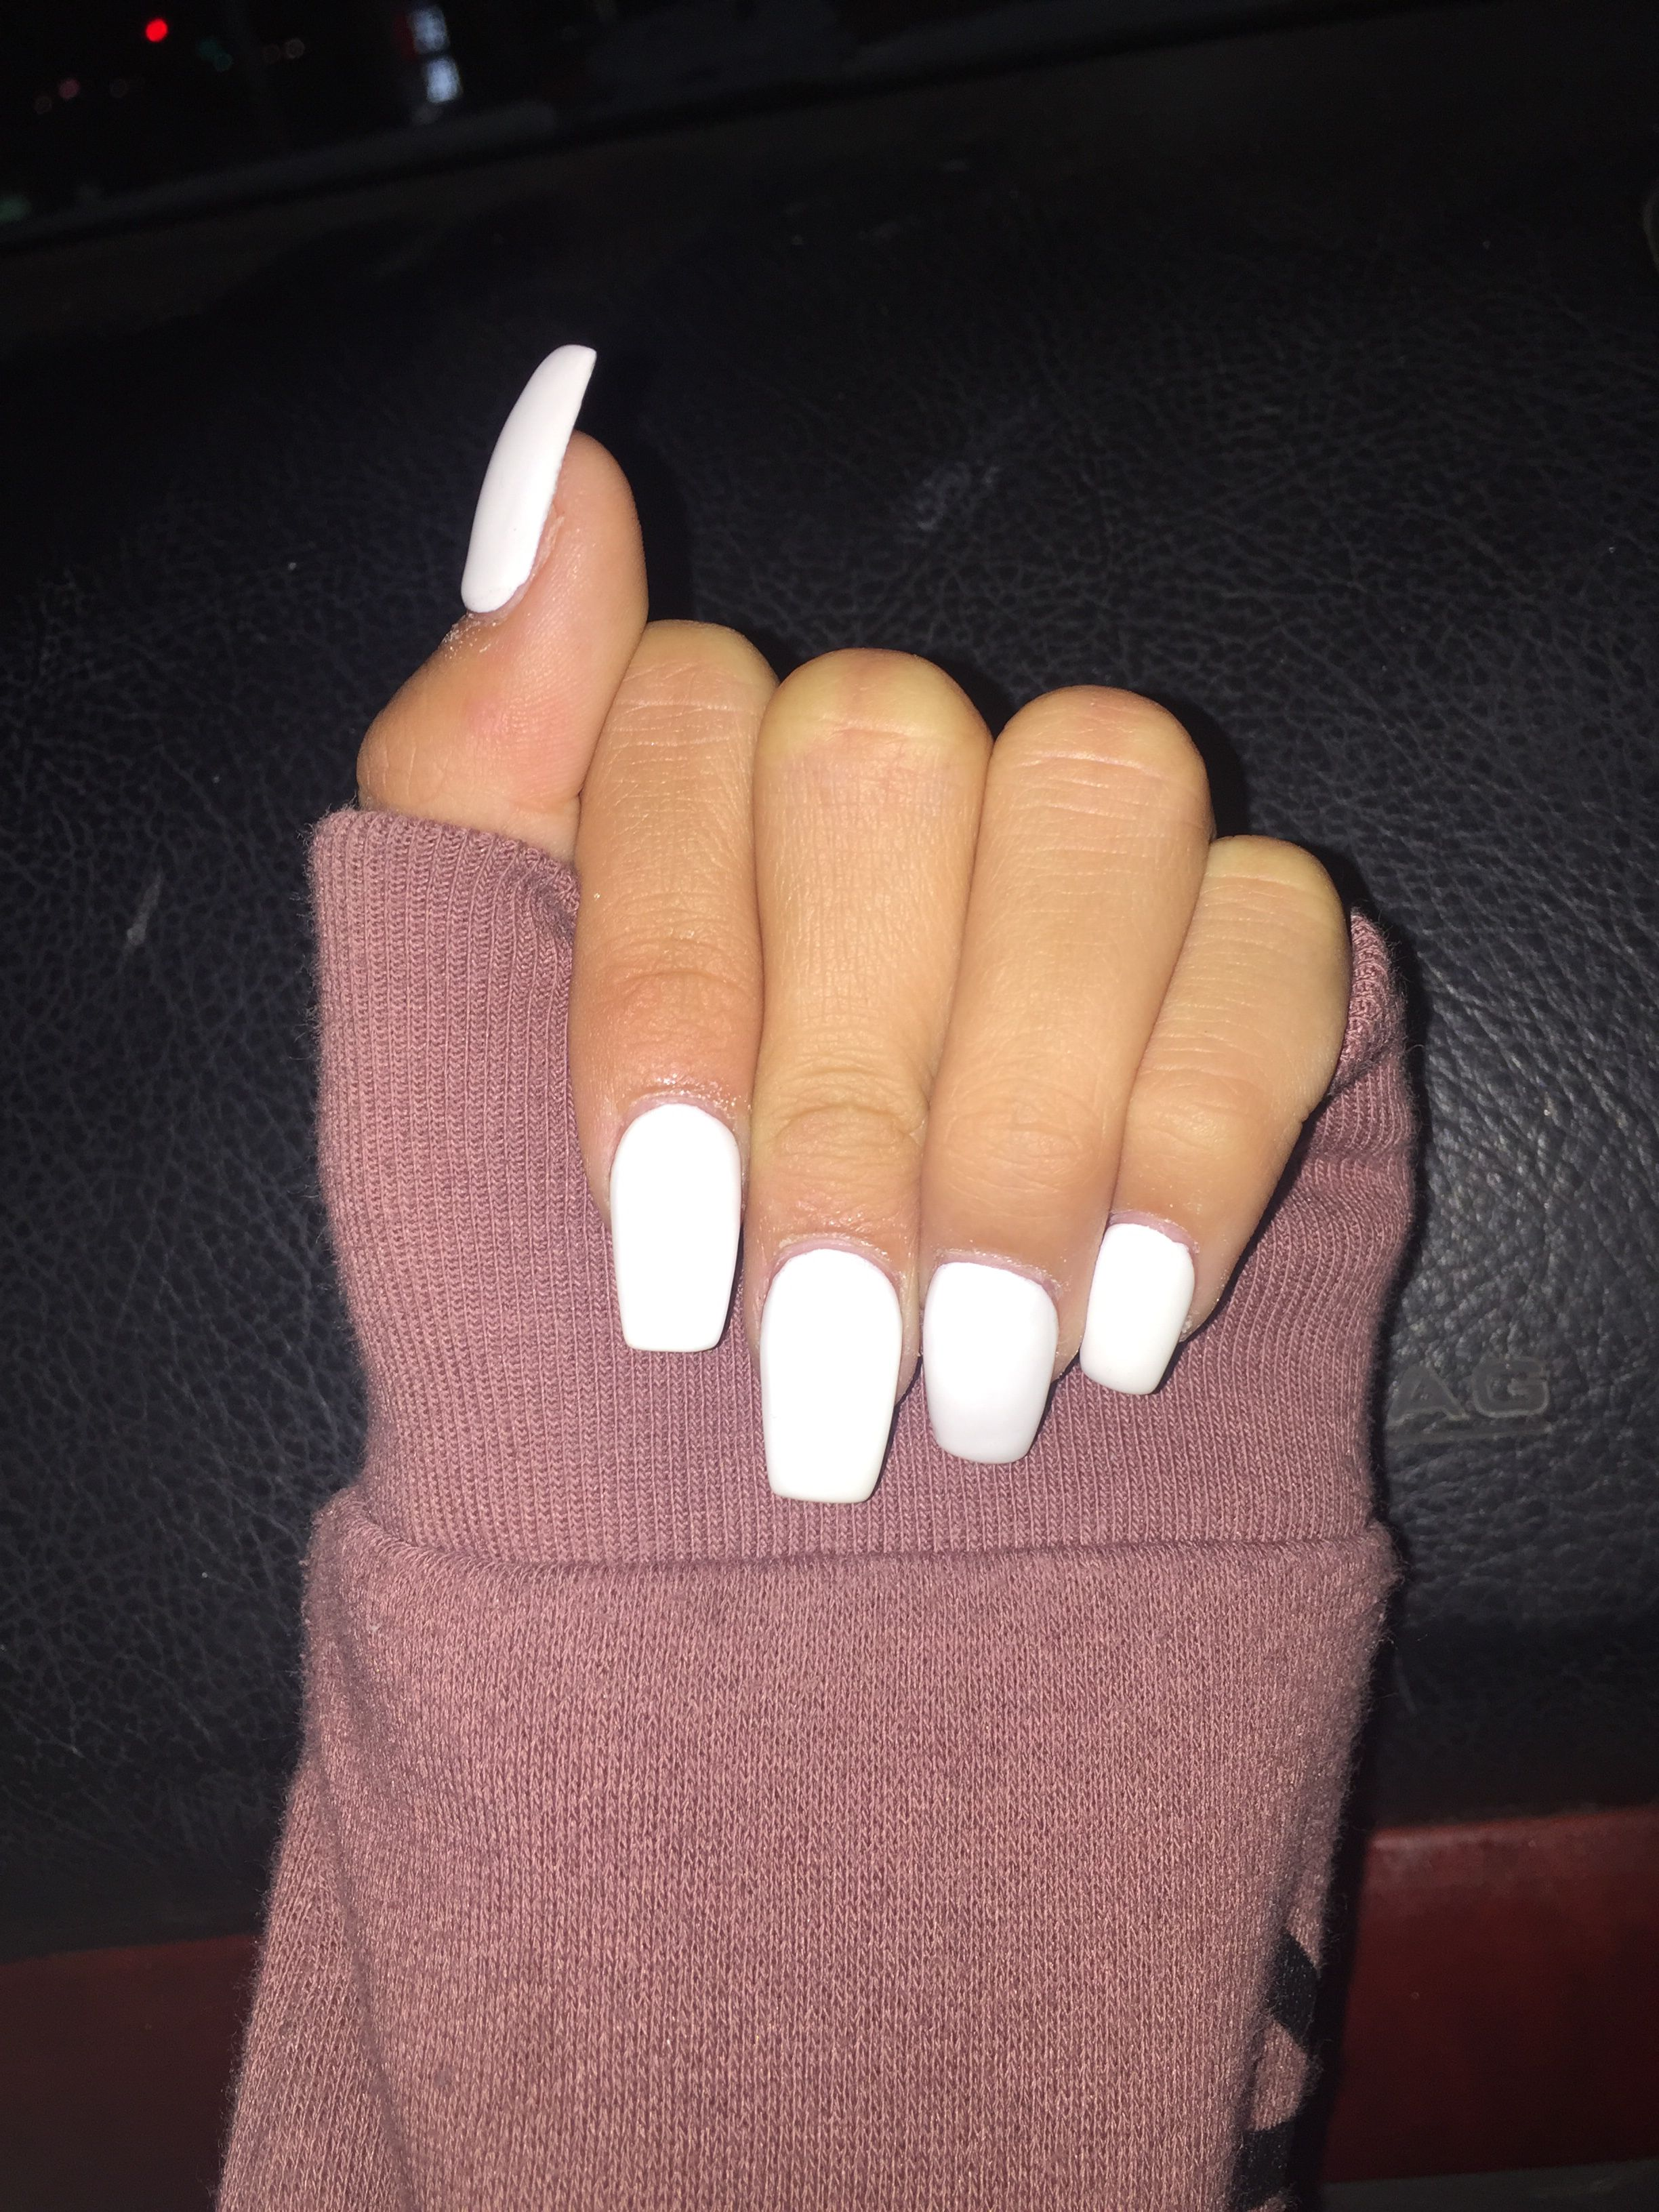 Cute White Acrylics But Asked For Coffin Shaped But They